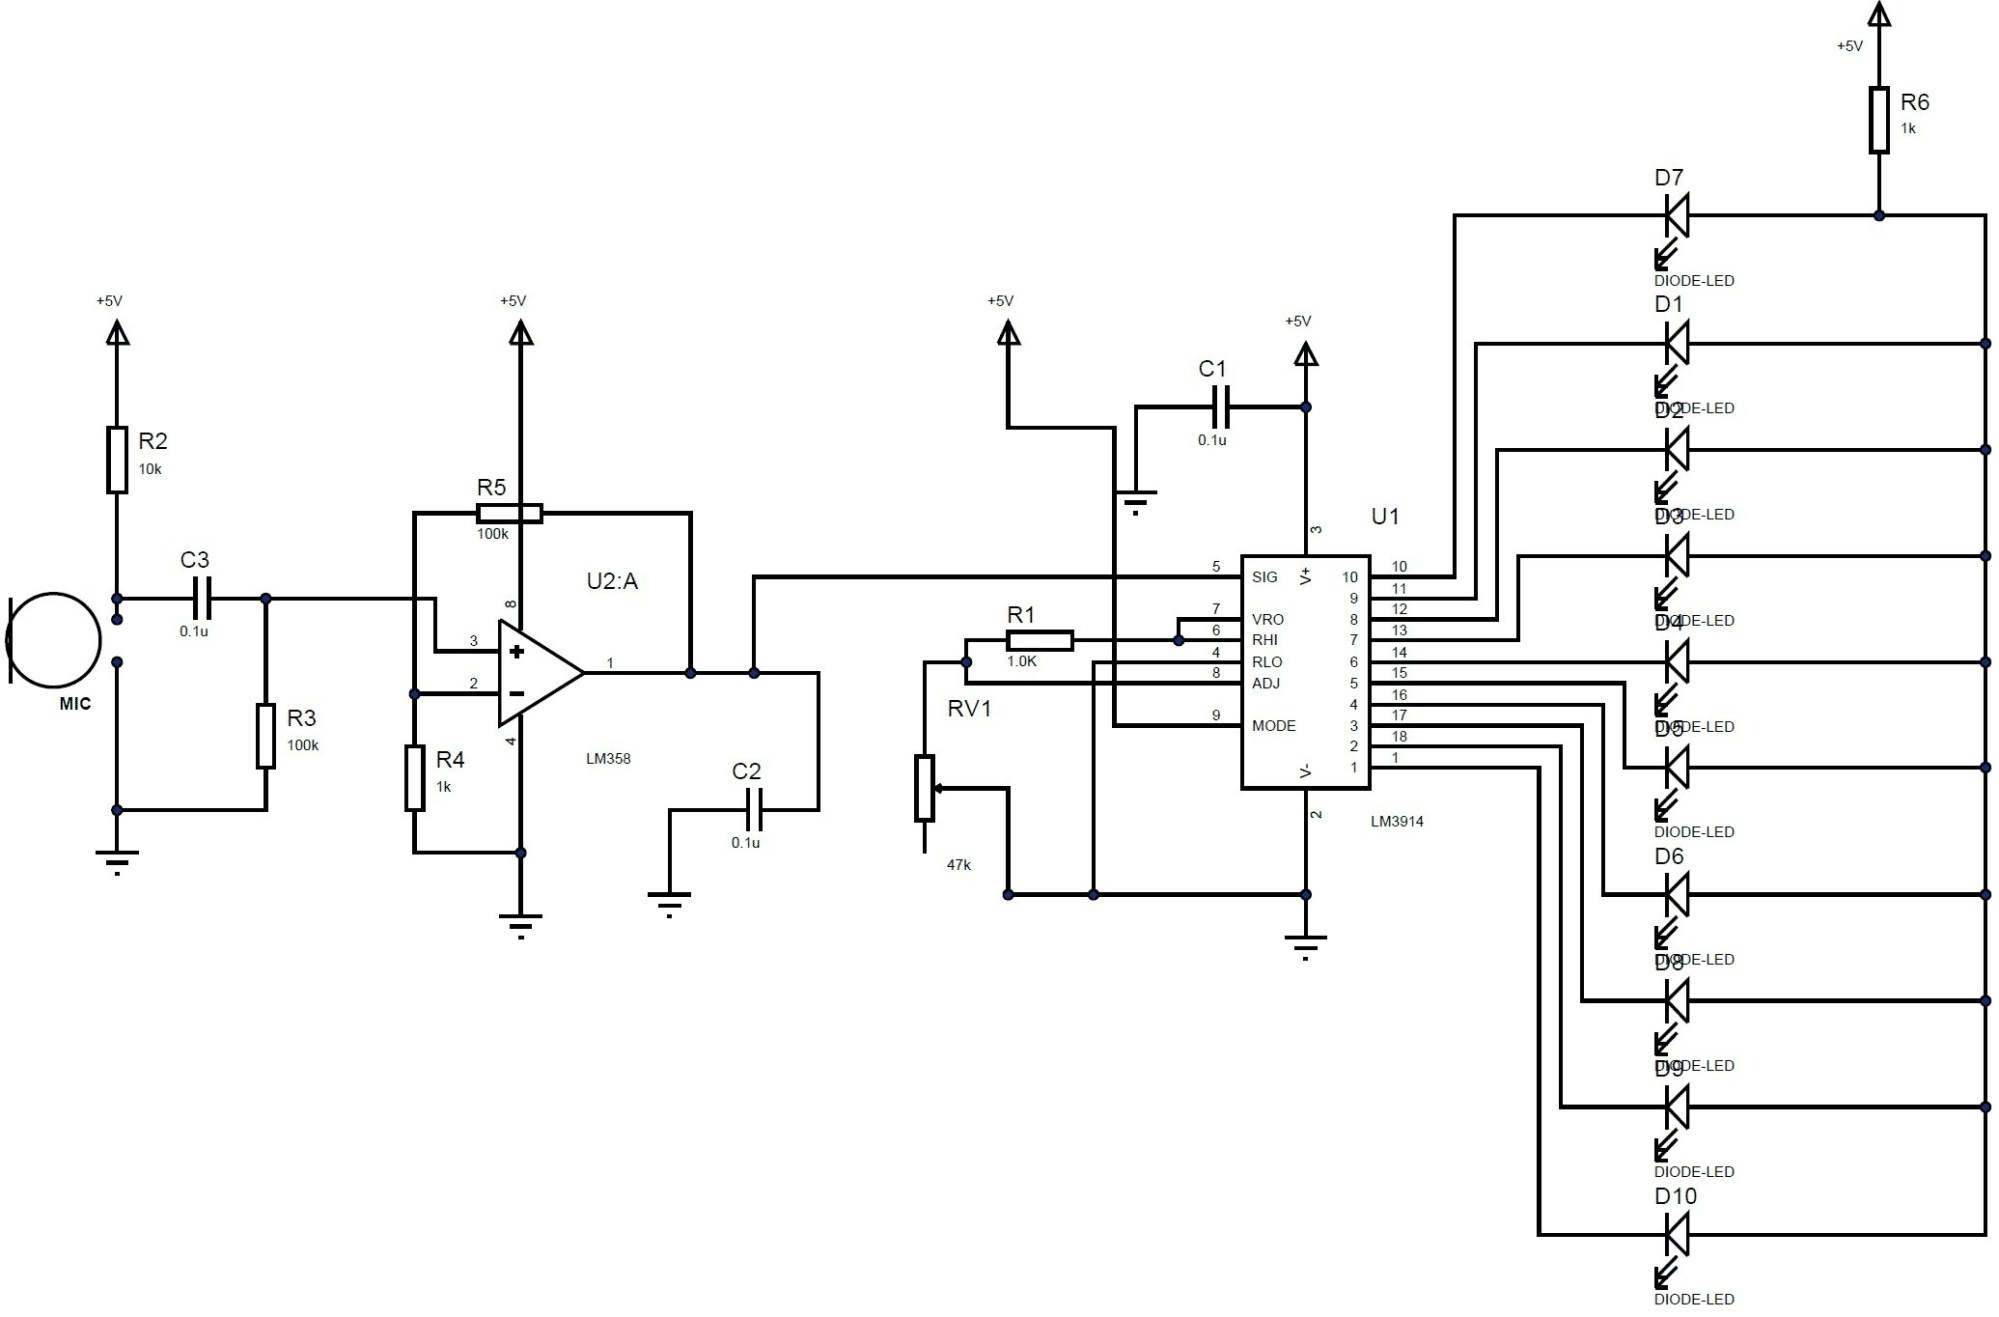 hight resolution of wiring diagram images detail name photoelectric switch photocell